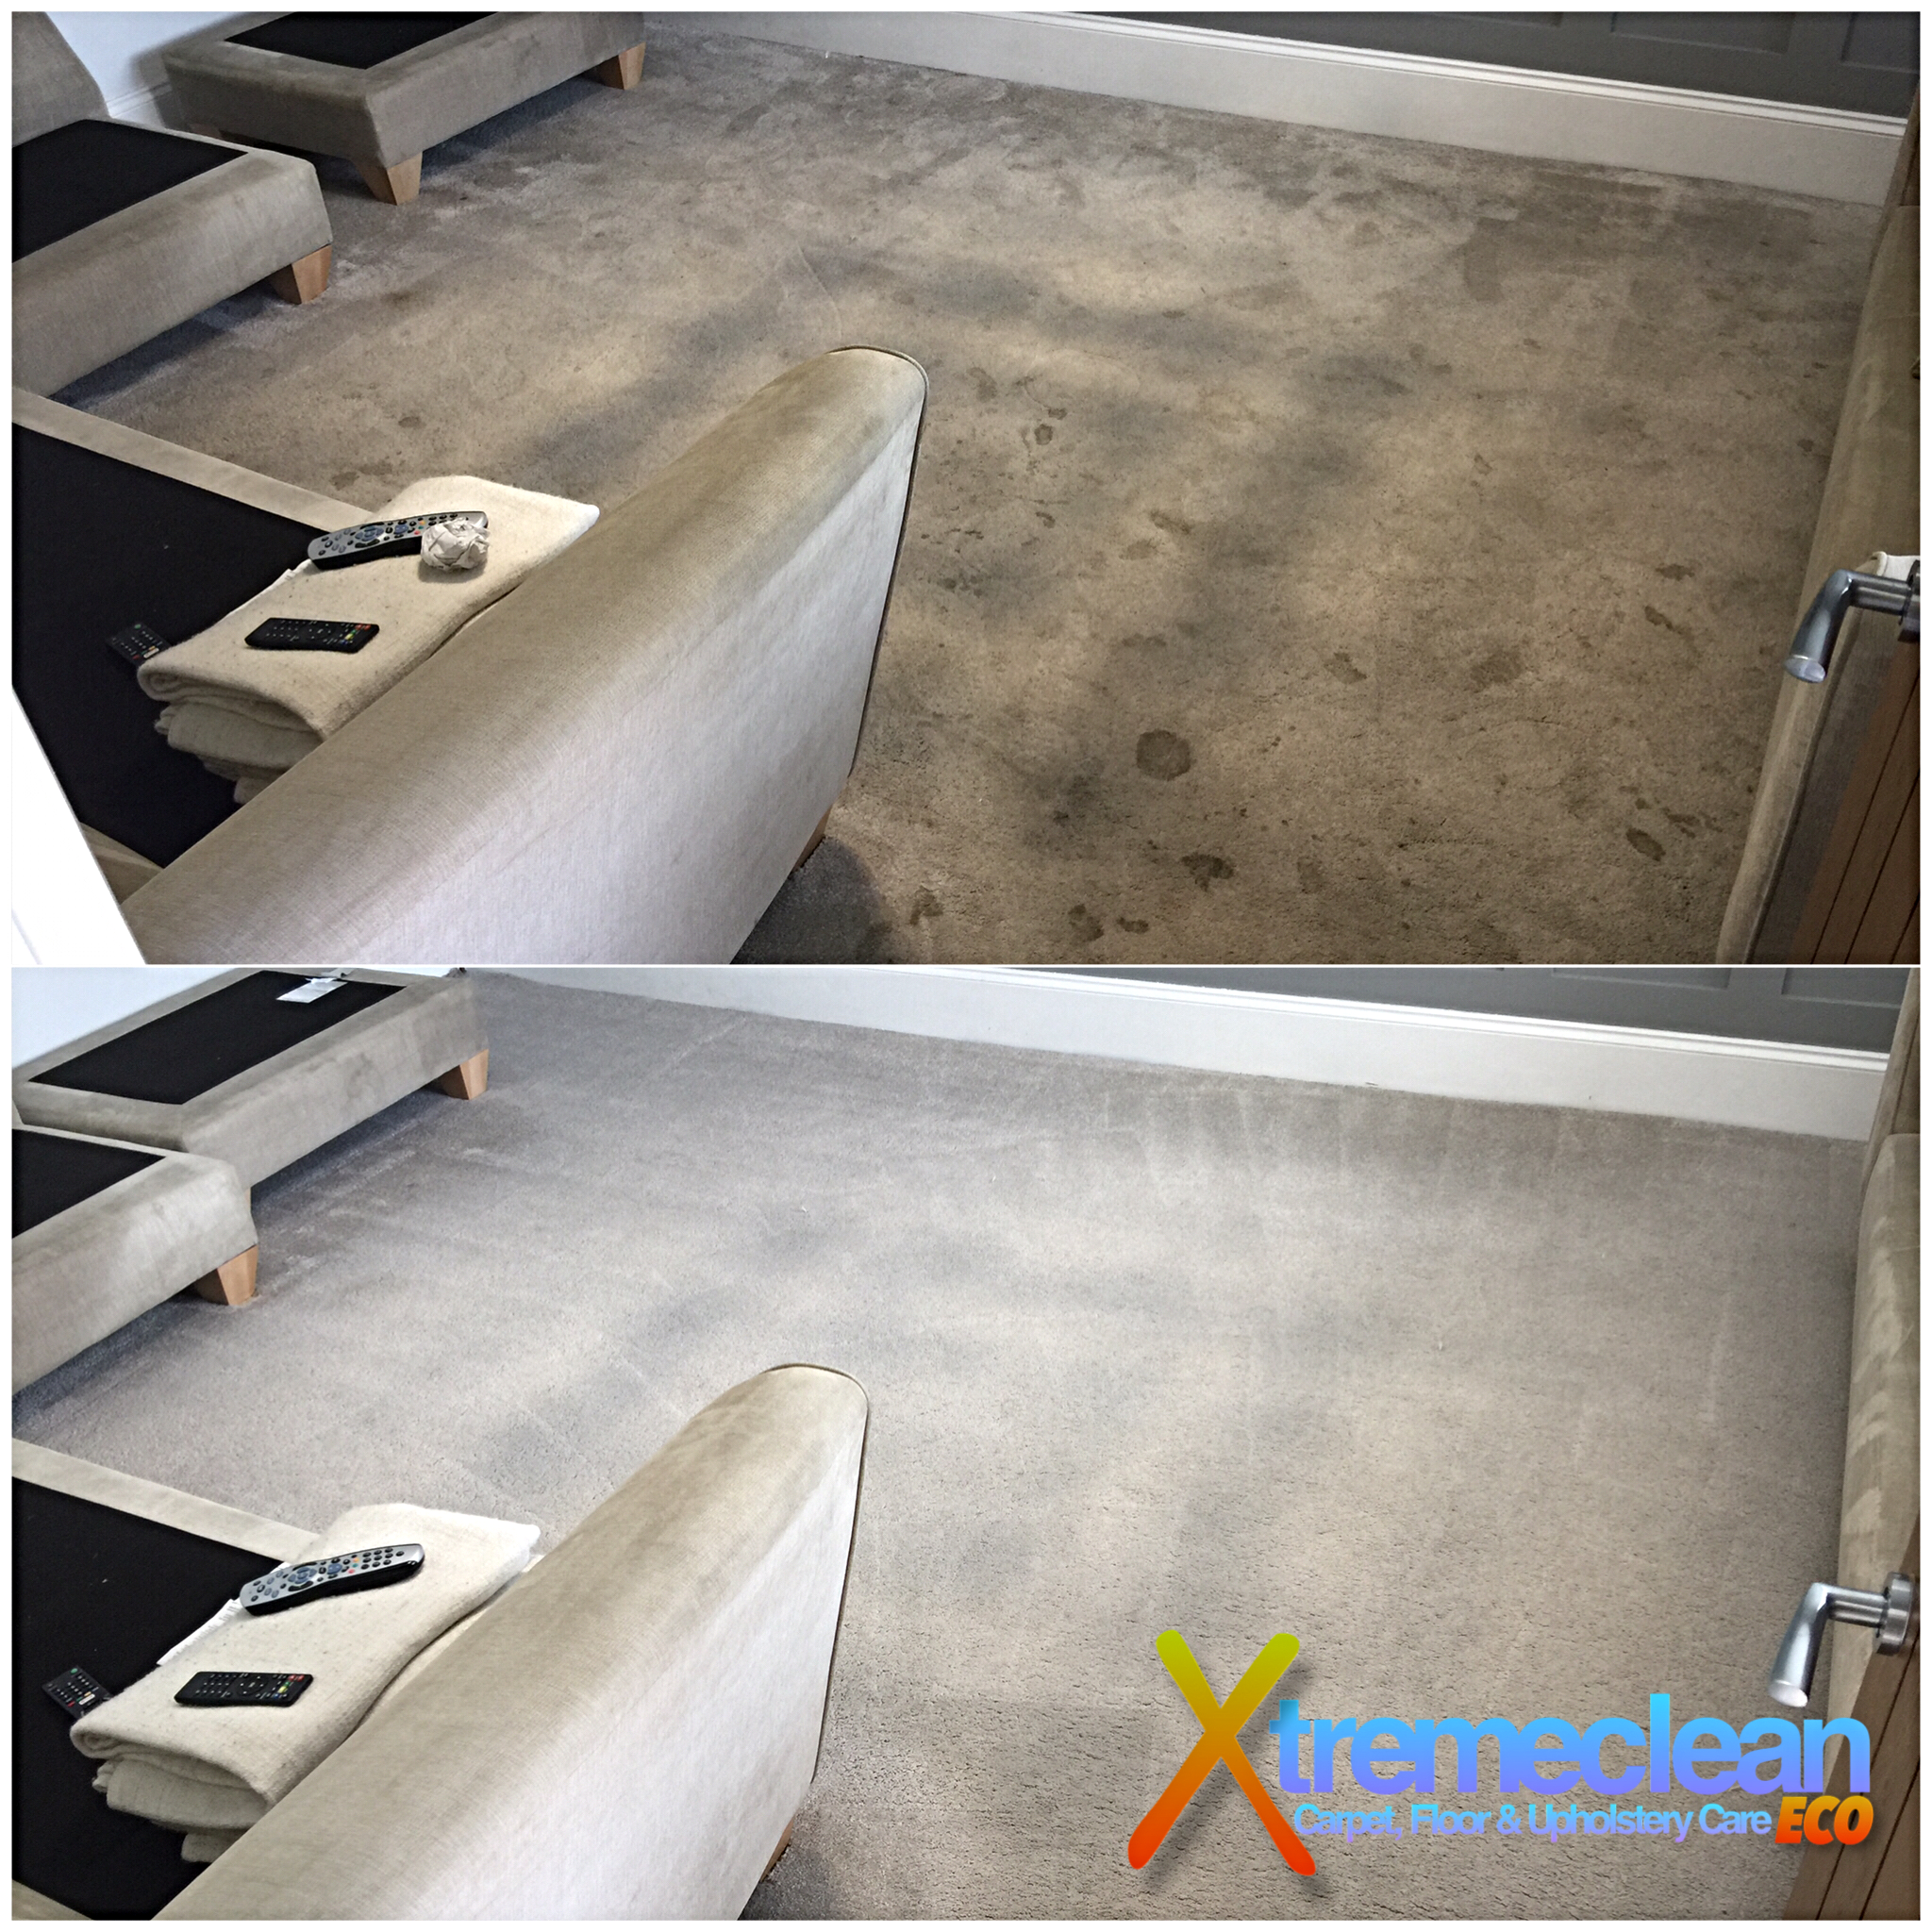 Lounge Carpet Cleaning